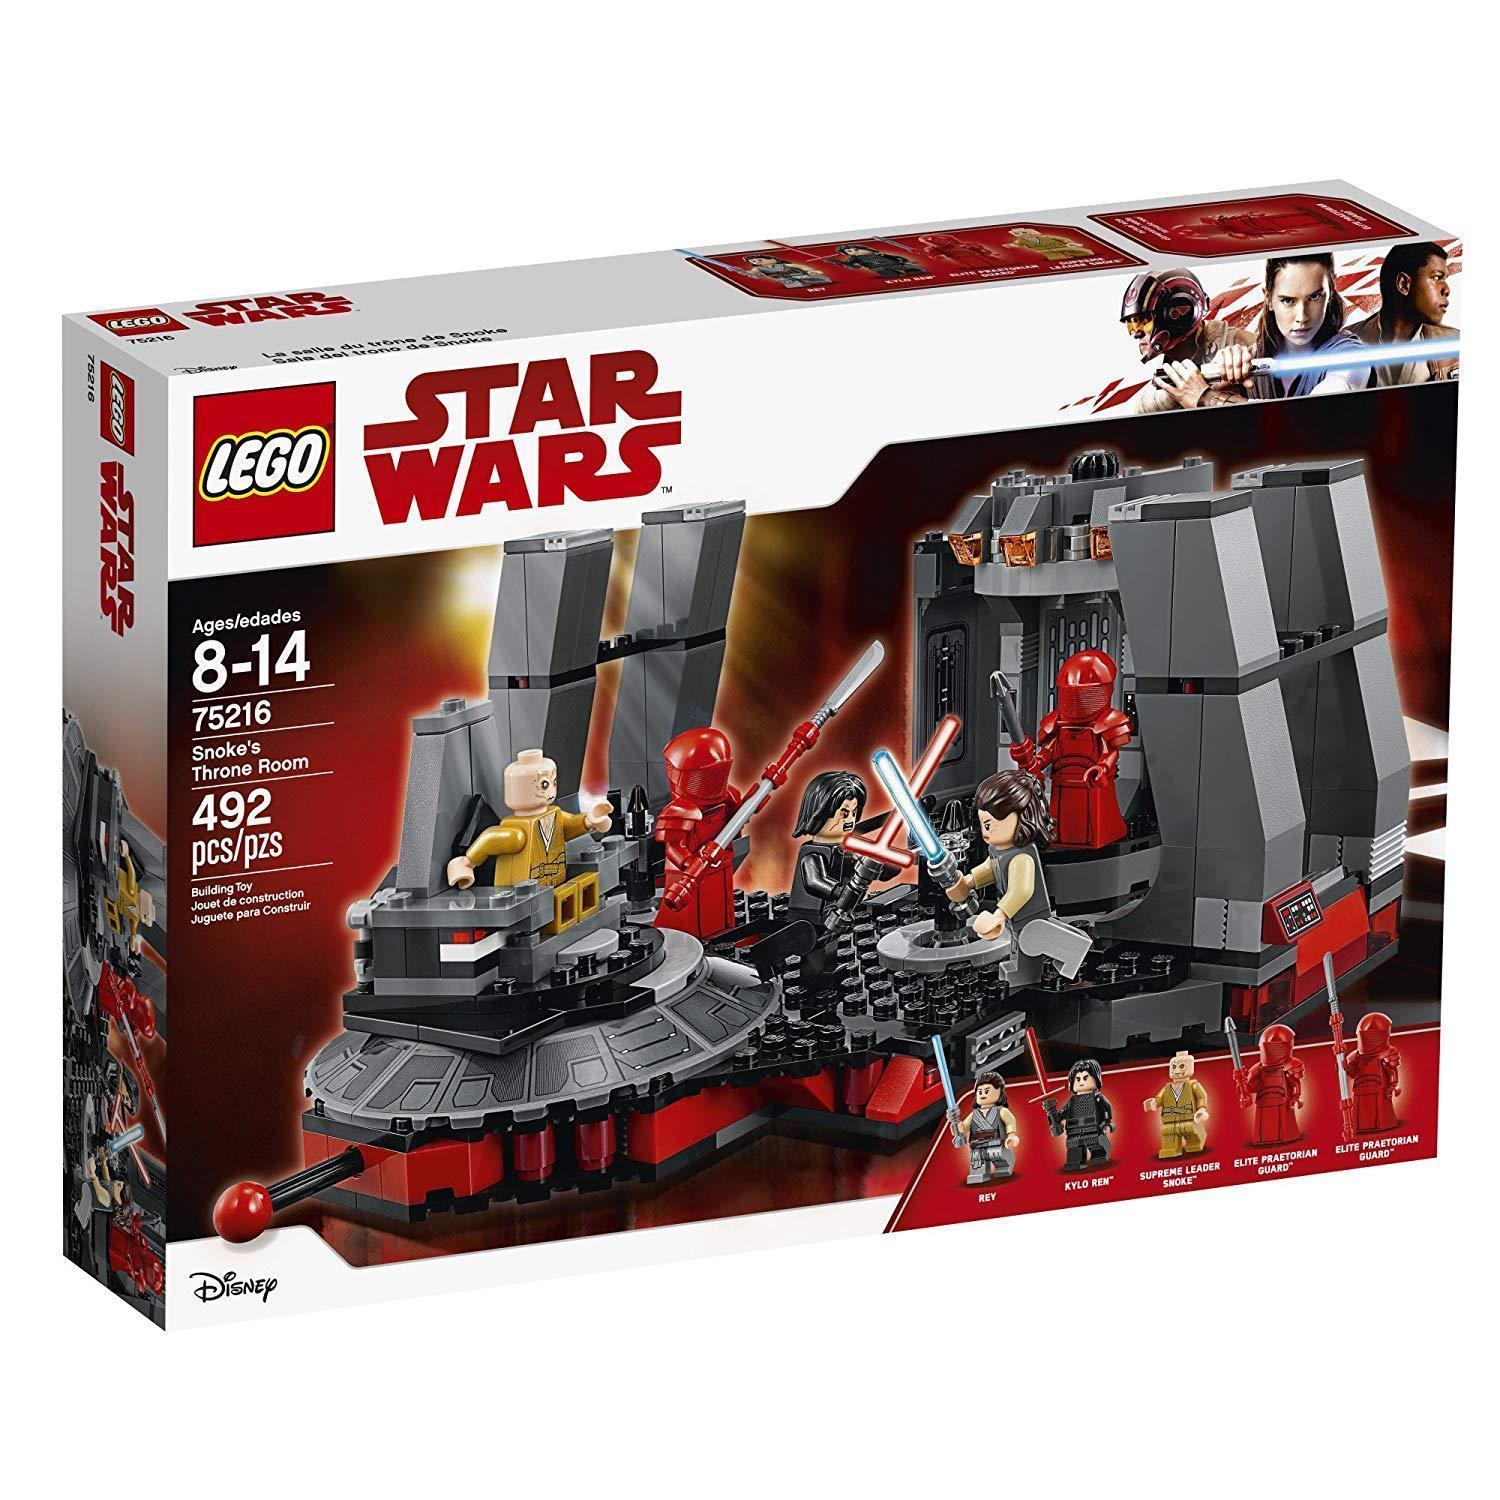 Lego Star Wars Snoke's Throne Room (75216 New) Building Set